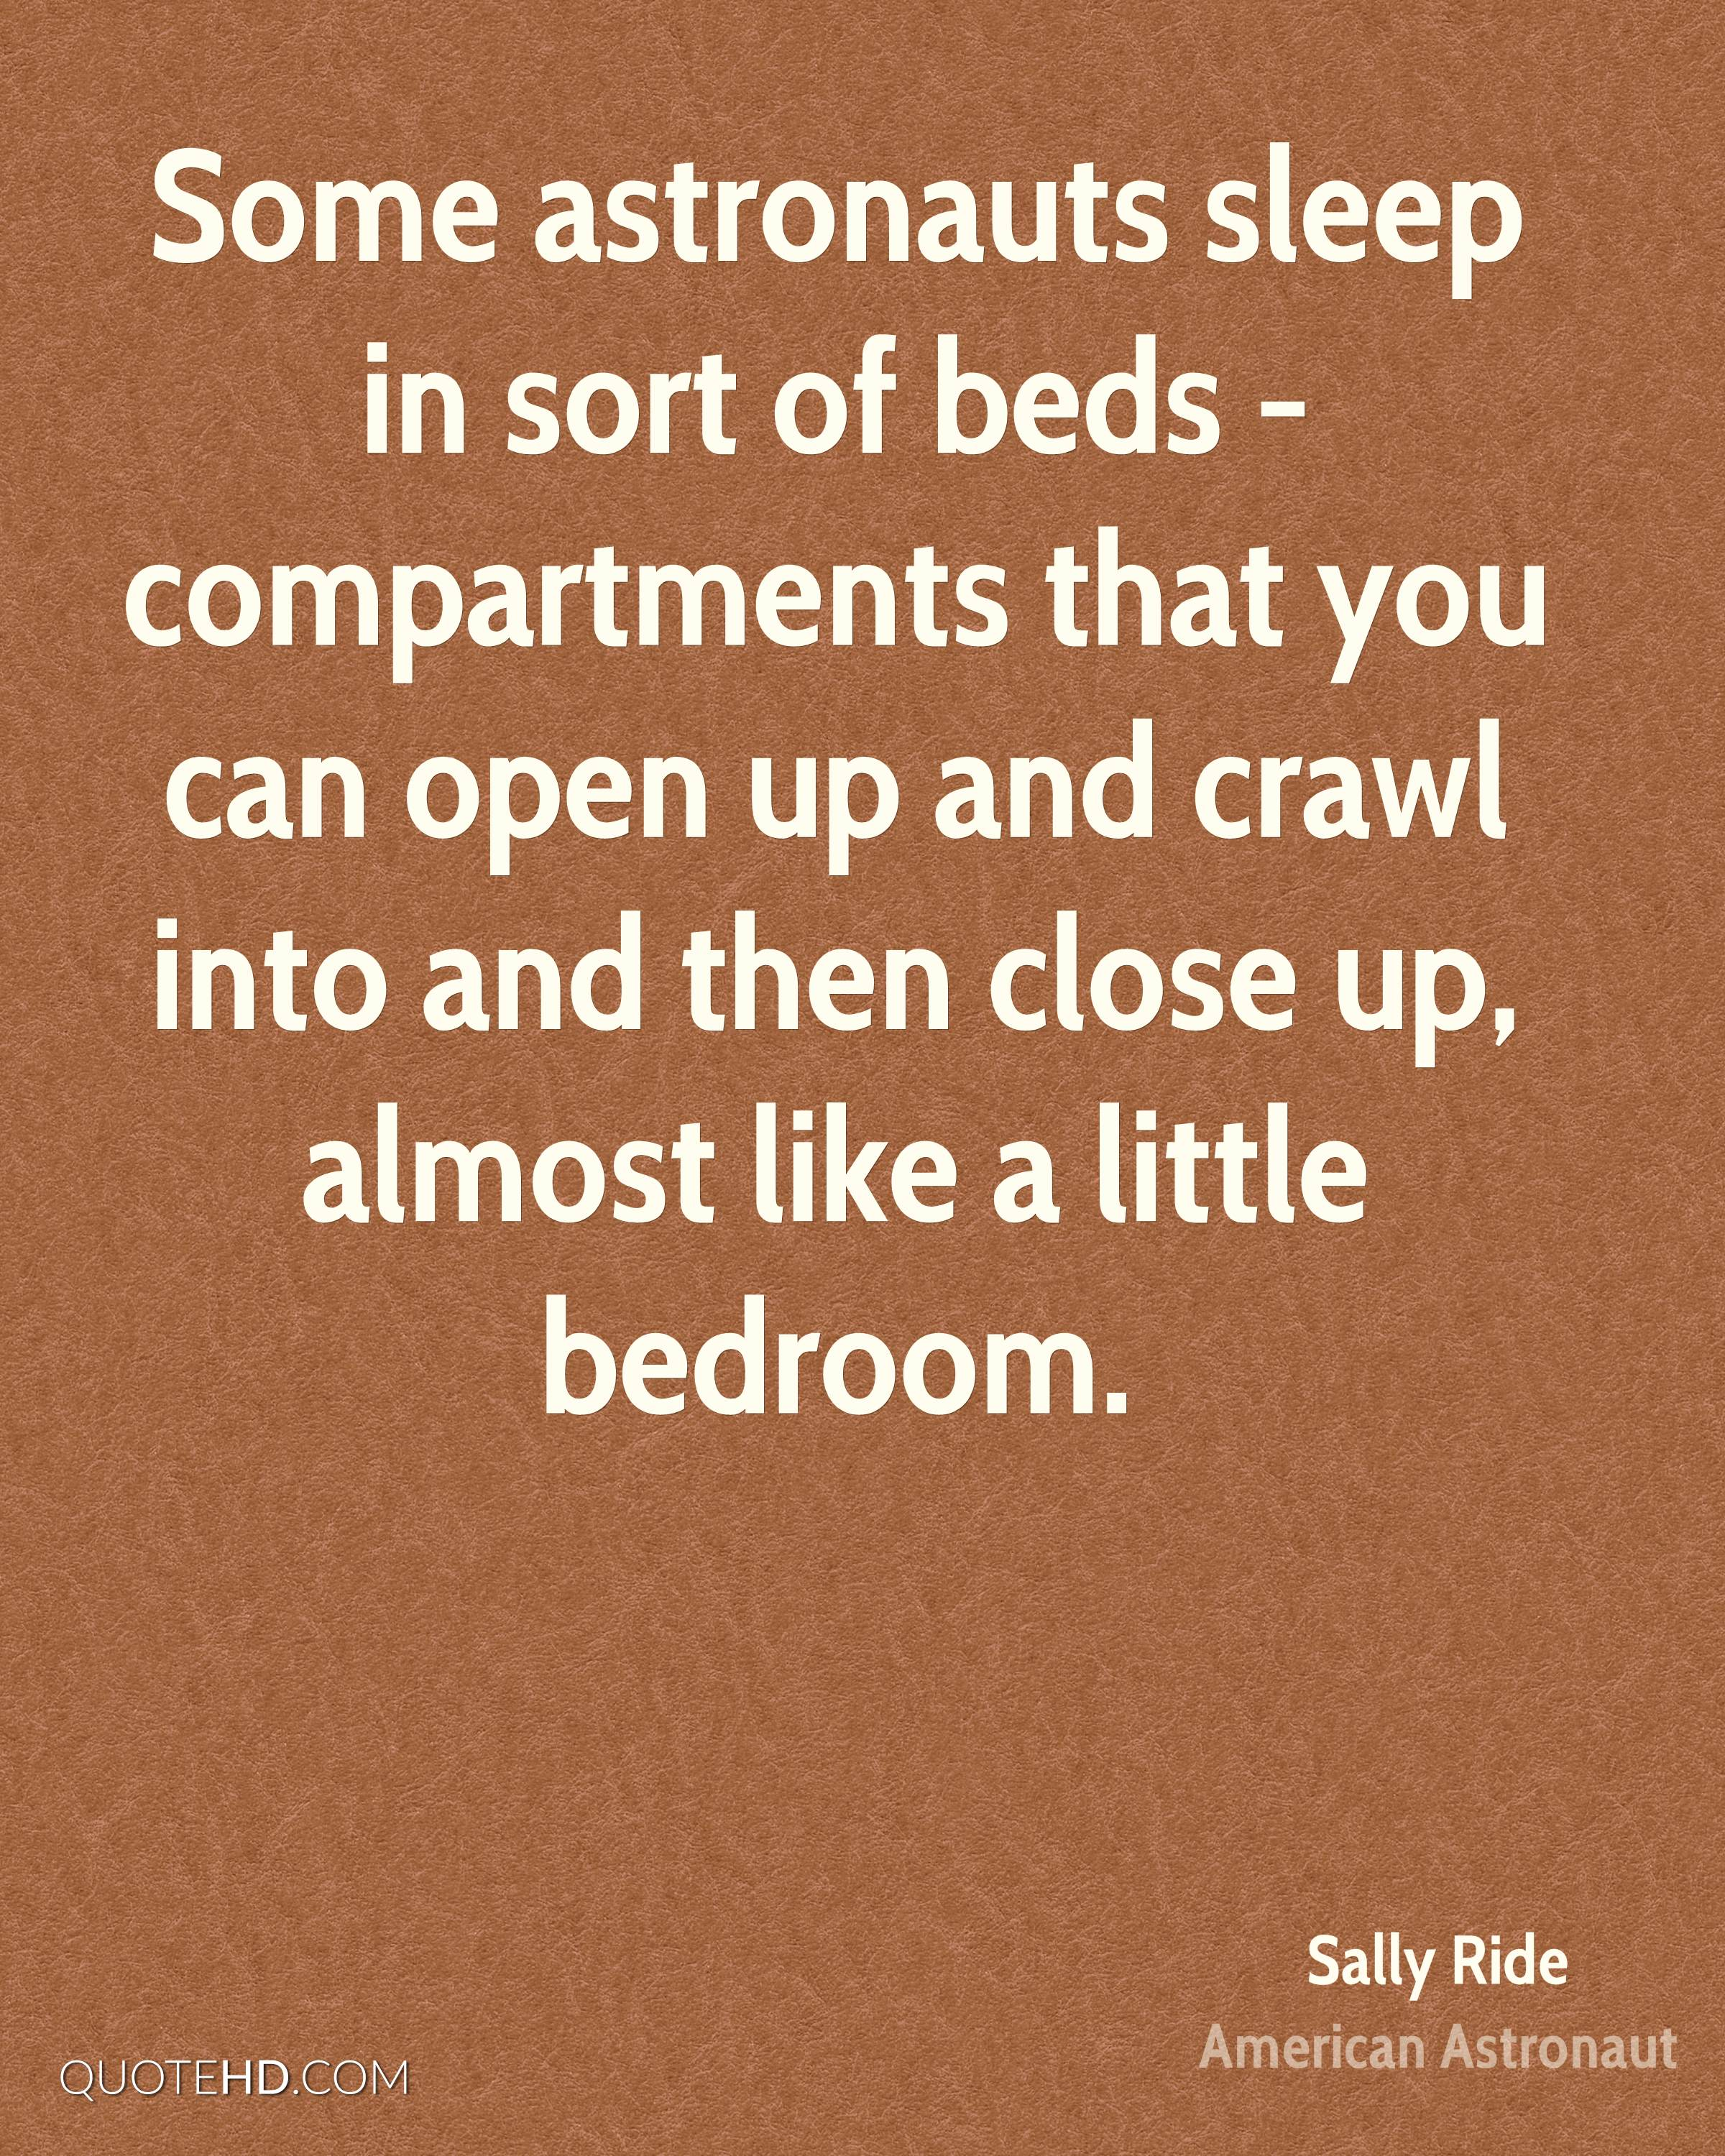 Some astronauts sleep in sort of beds - compartments that you can open up and crawl into and then close up, almost like a little bedroom.